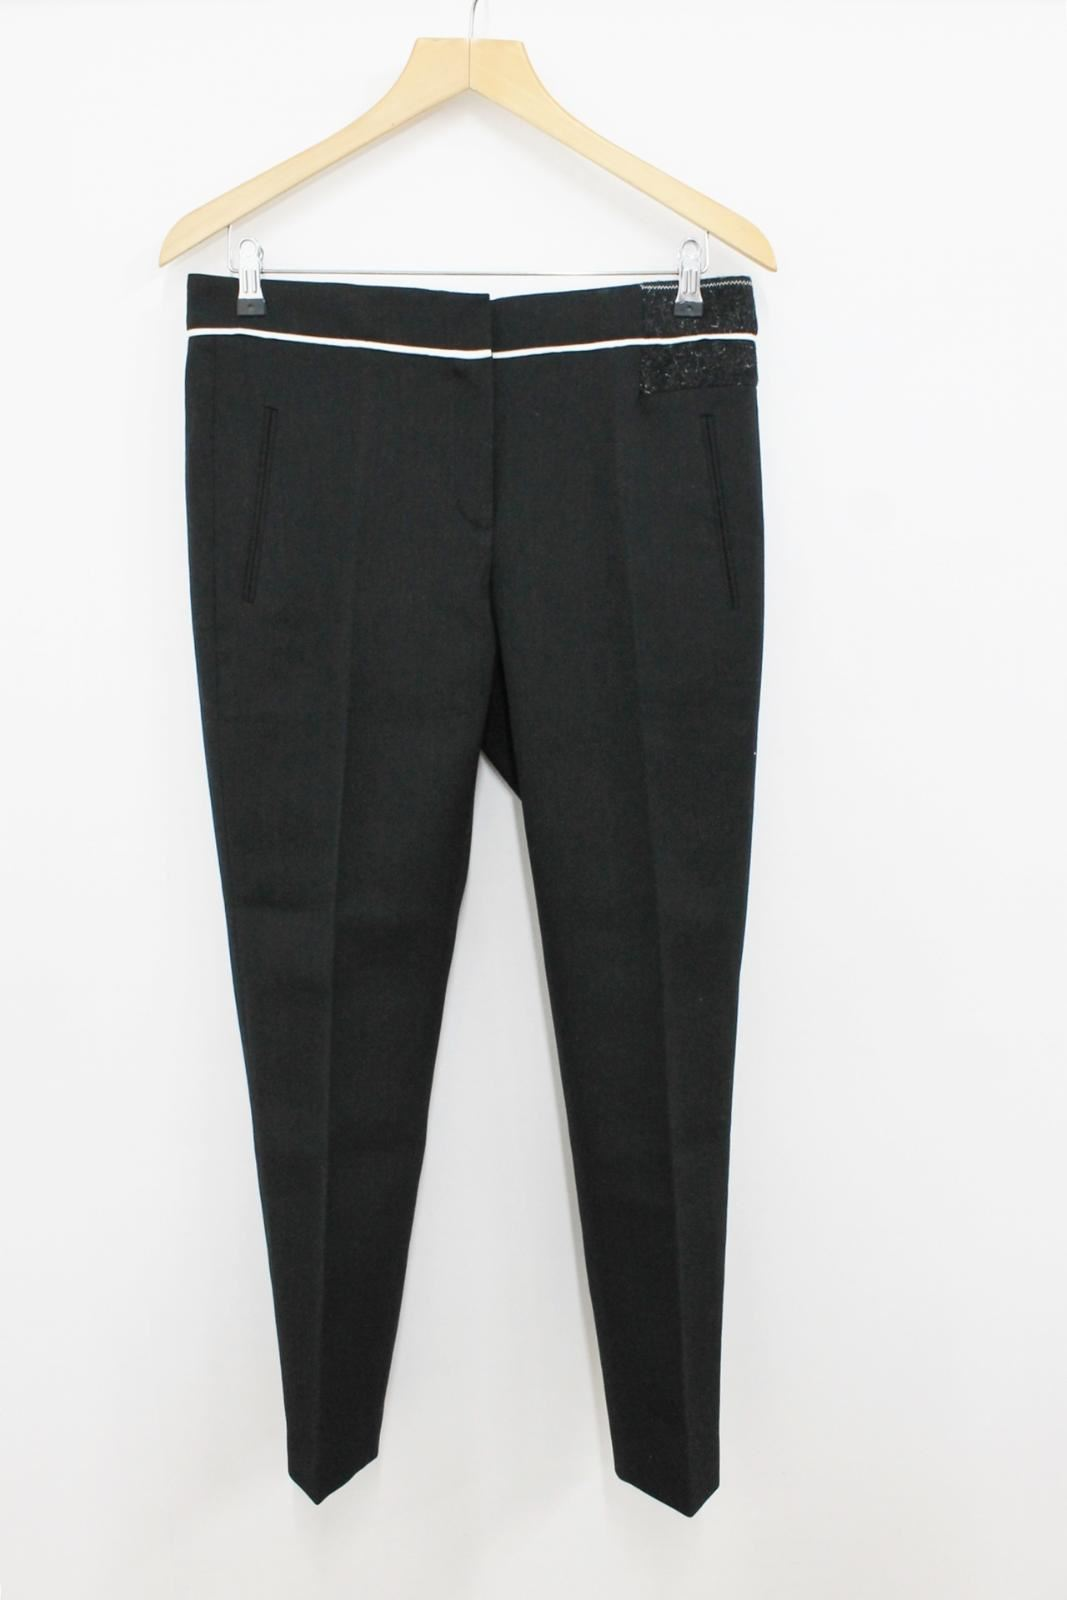 NICOLE-FARHI-Ladies-Black-Wool-High-Waisted-Cigarette-Trousers-Size-UK10